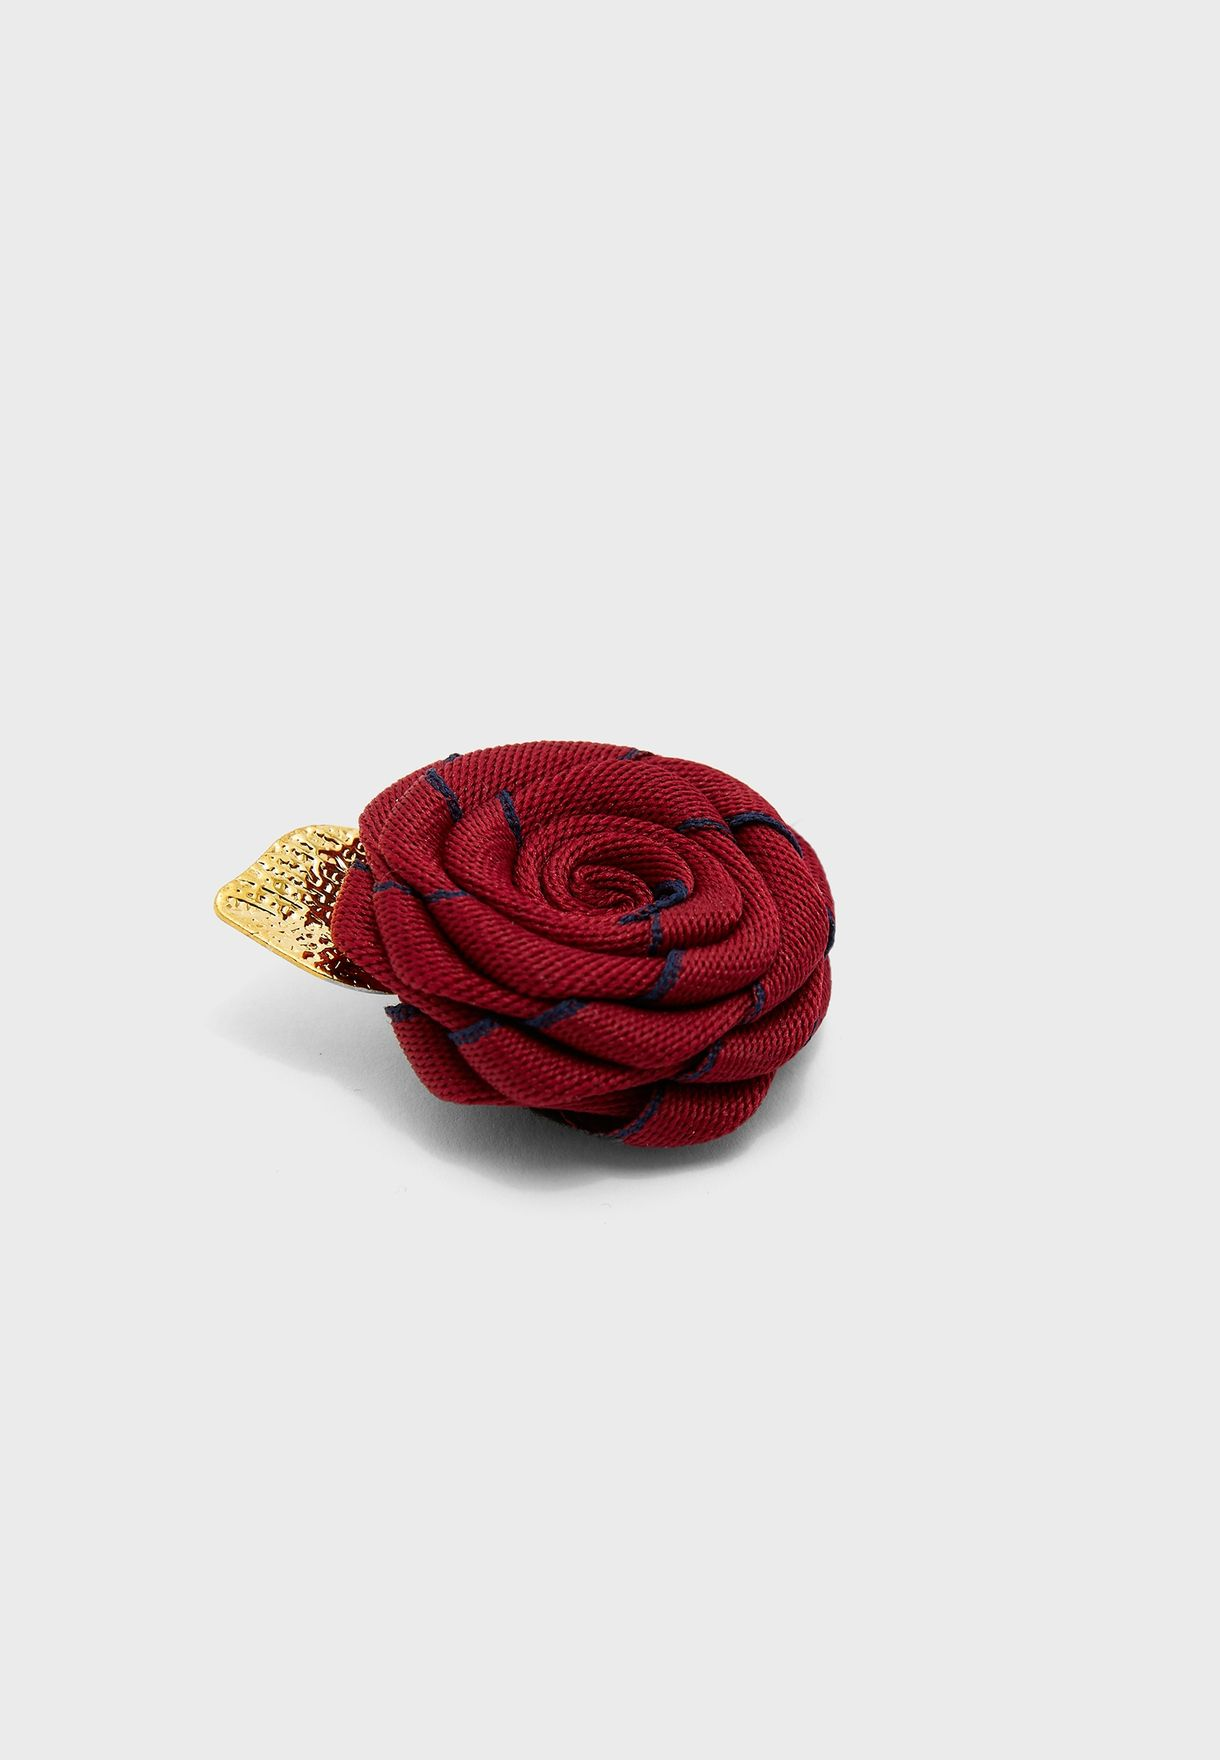 Formal Red Rose Brooch